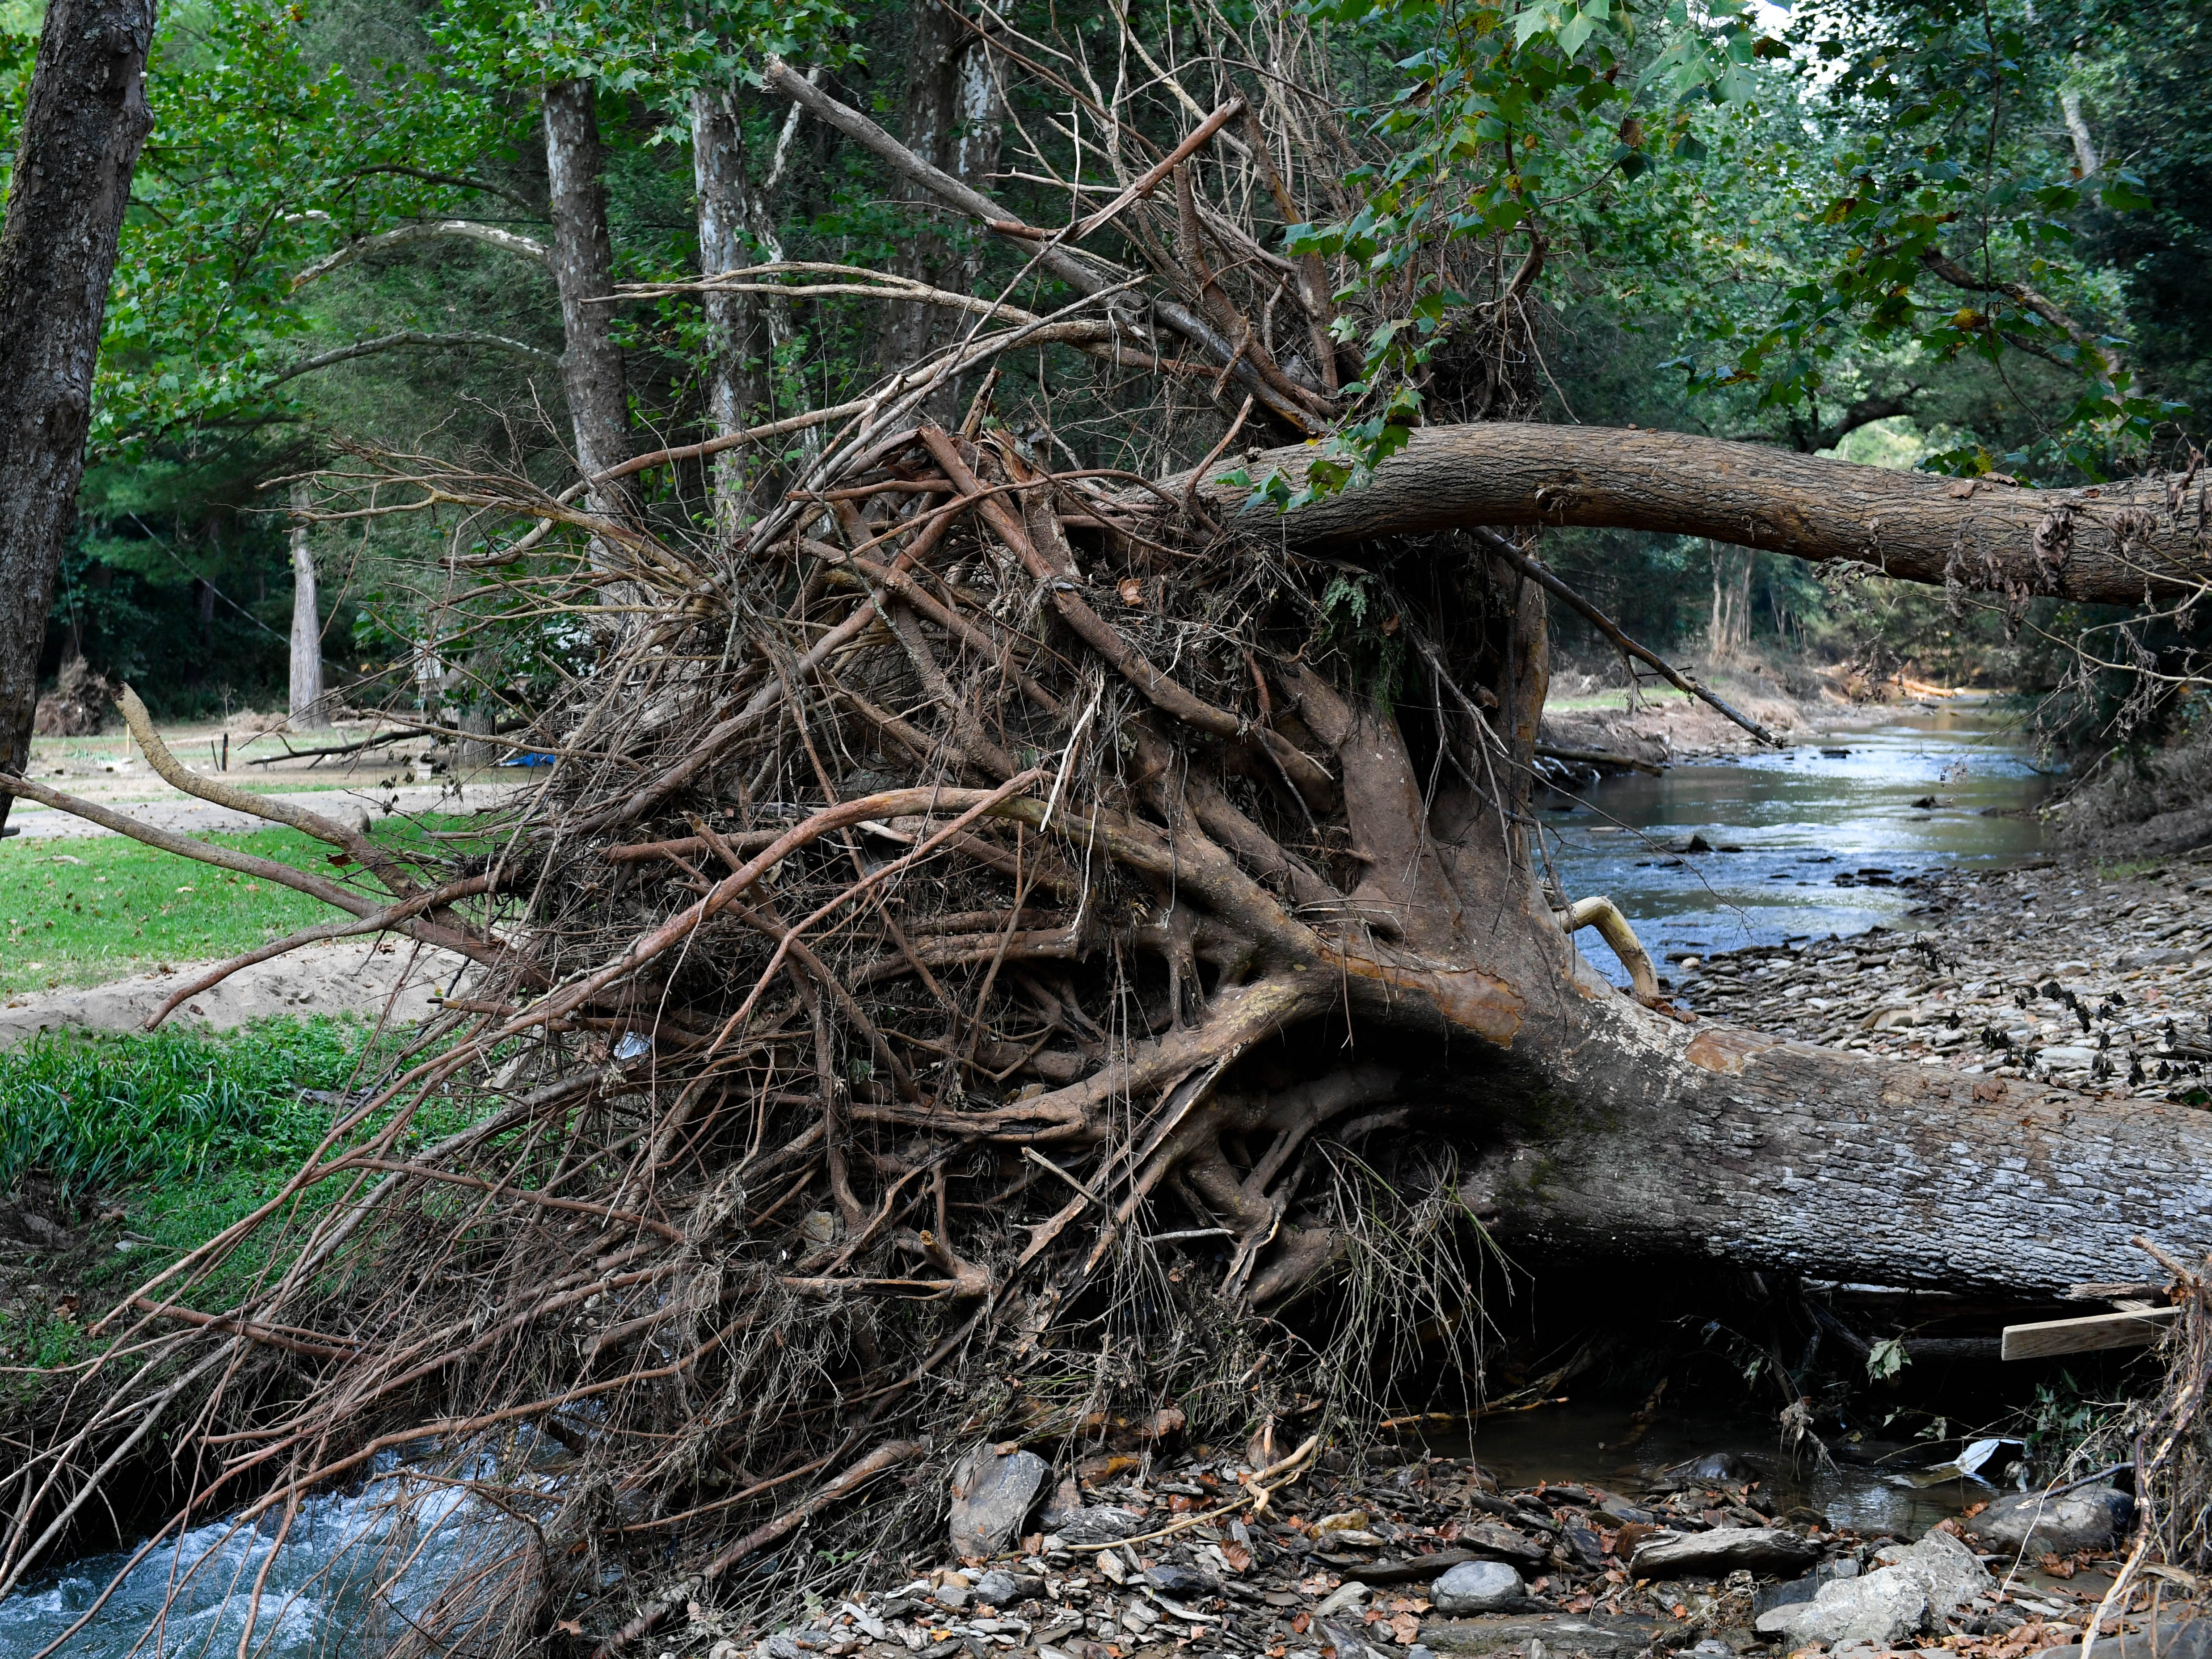 Not even trees with the deepest of roots were safe from the flood.